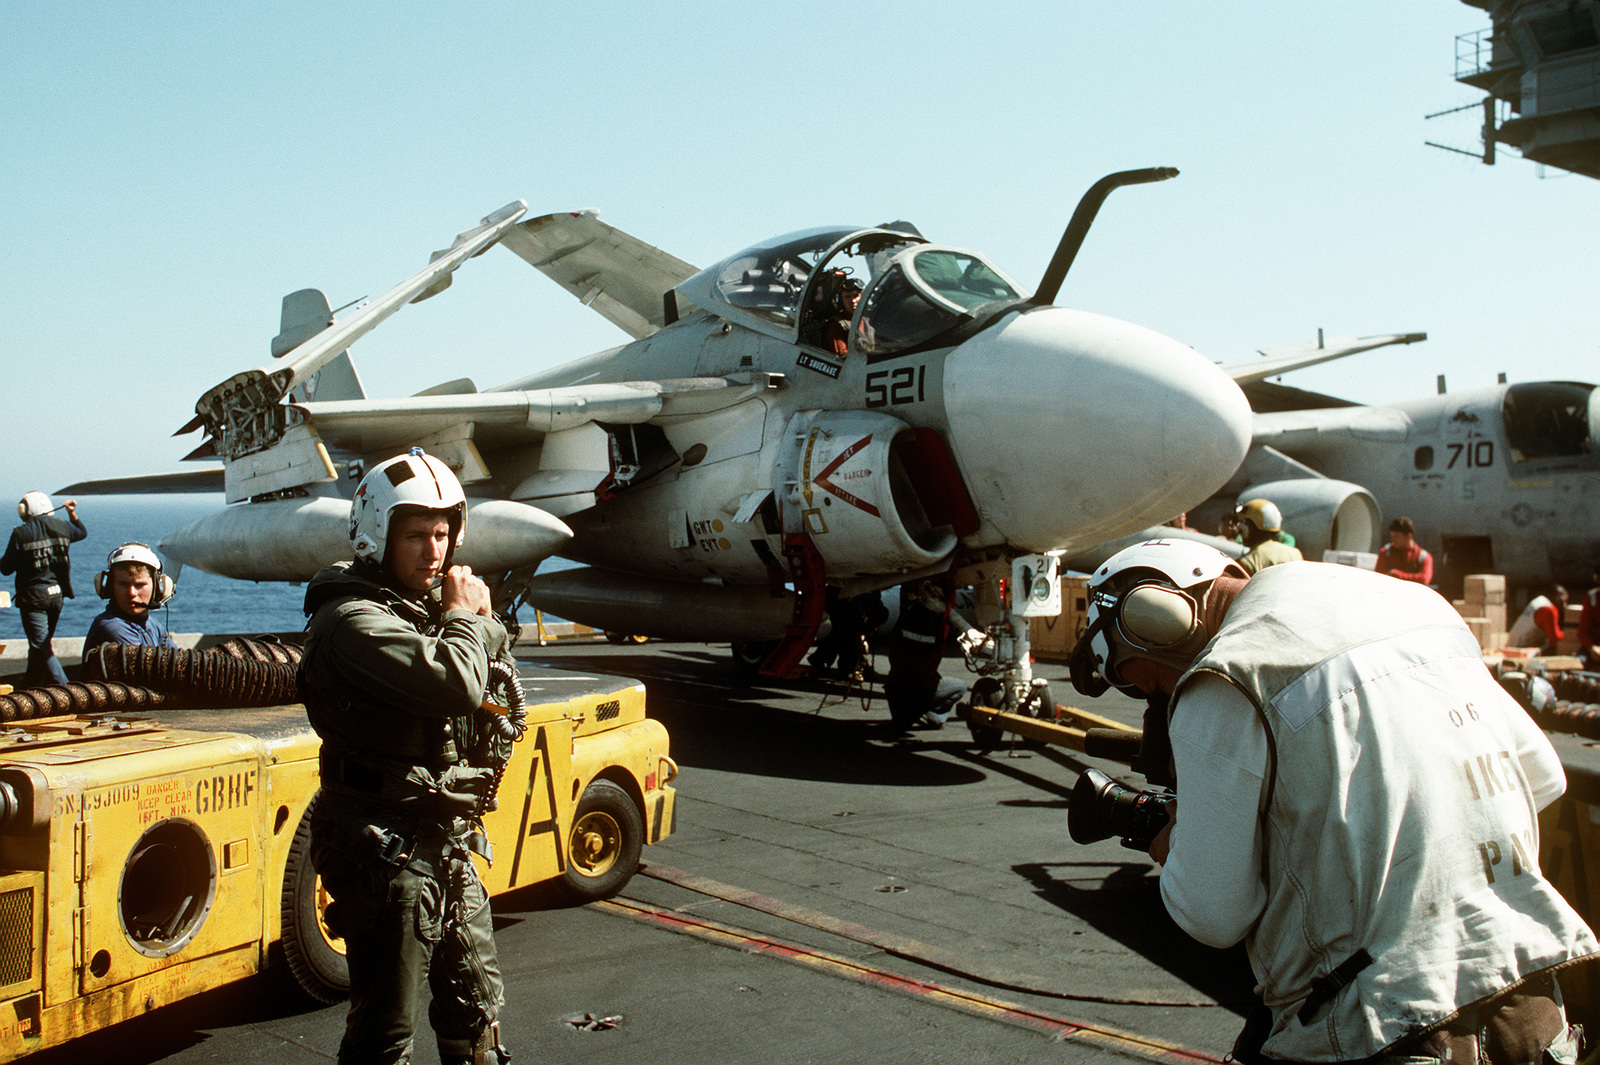 An Attack Squadron 34 (VA-34) A-6E Intruder aircraft flight crewman is videotaped as he walks over to his aircraft on flight deck of the nuclear-powered aircraft carrier USS DWIGHT D. EISENHOWER (CVN-69) during Operation Desert Shield